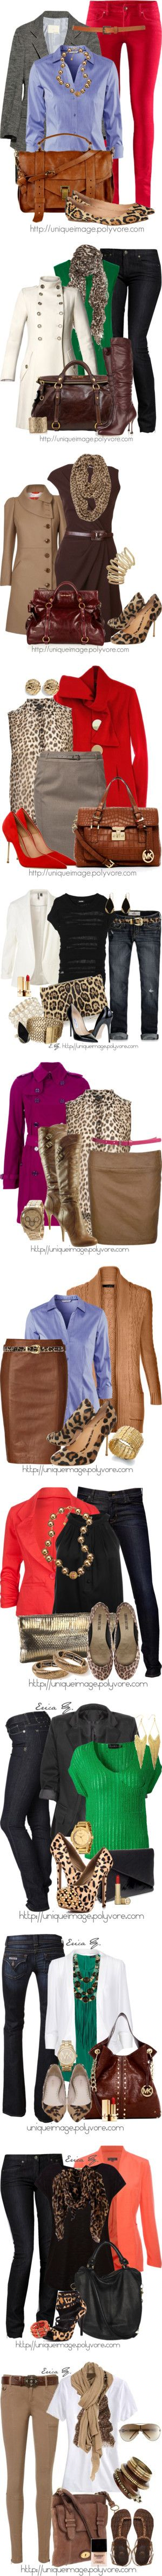 Fall outfits to try.